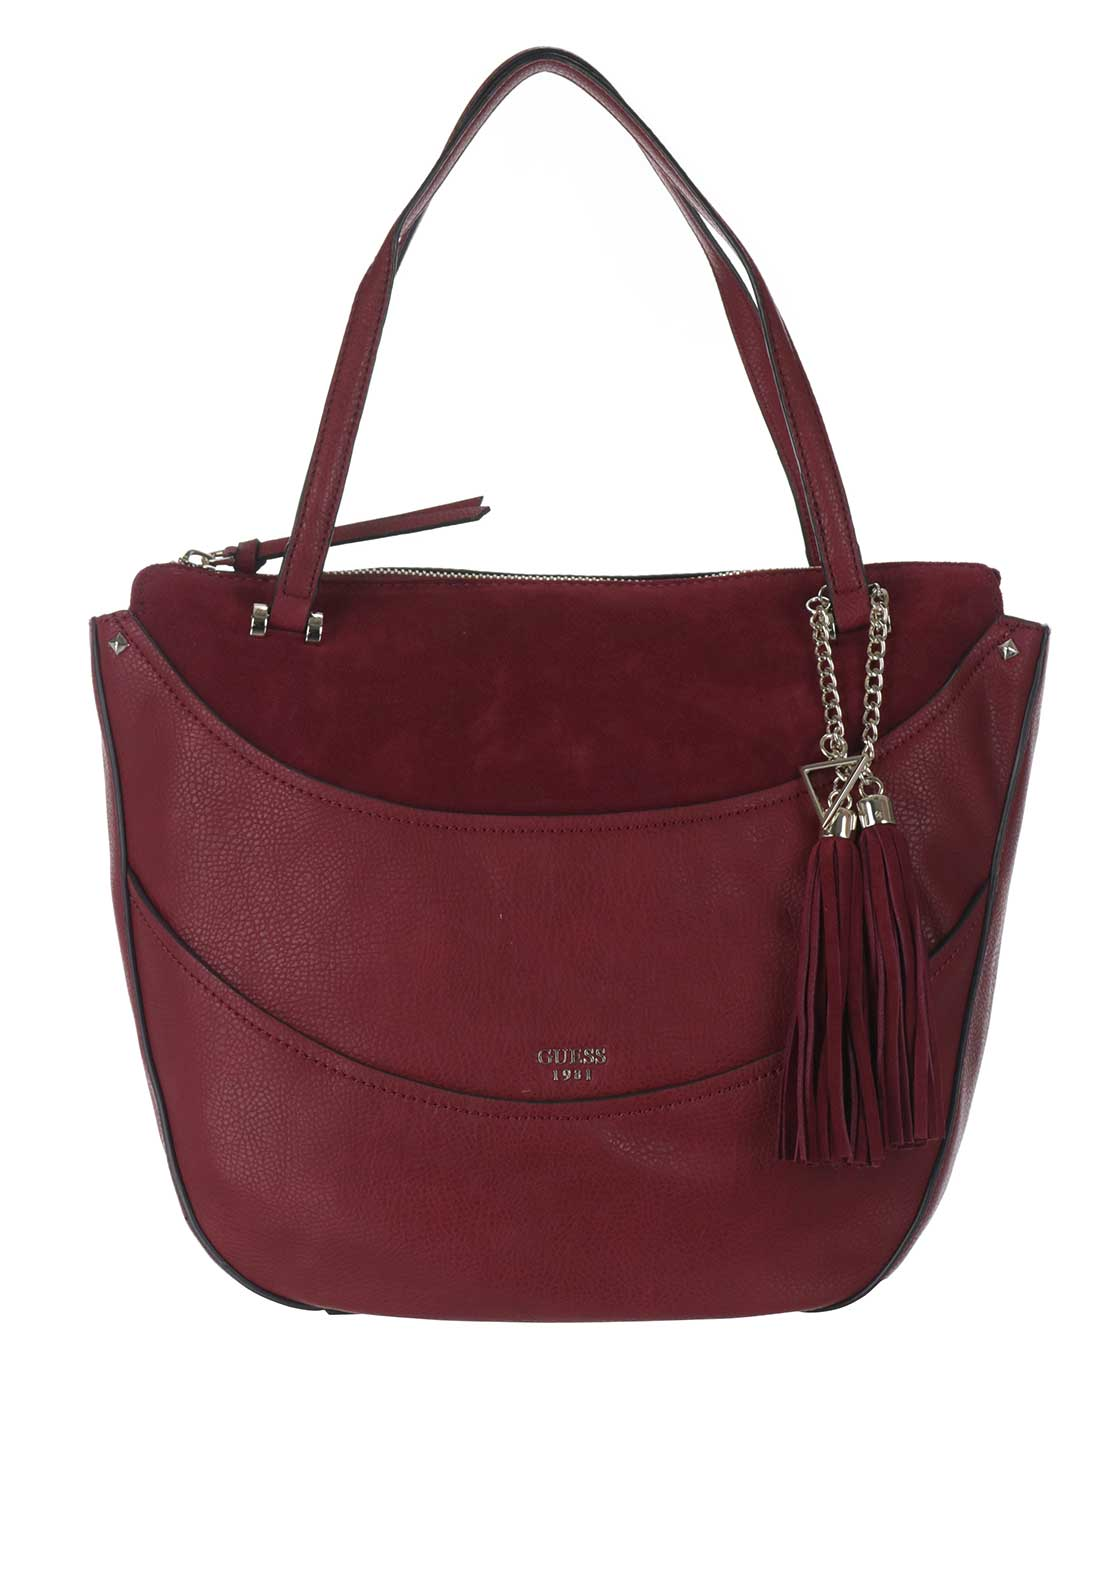 Guess Solene Shoulder Bag, Bordeaux